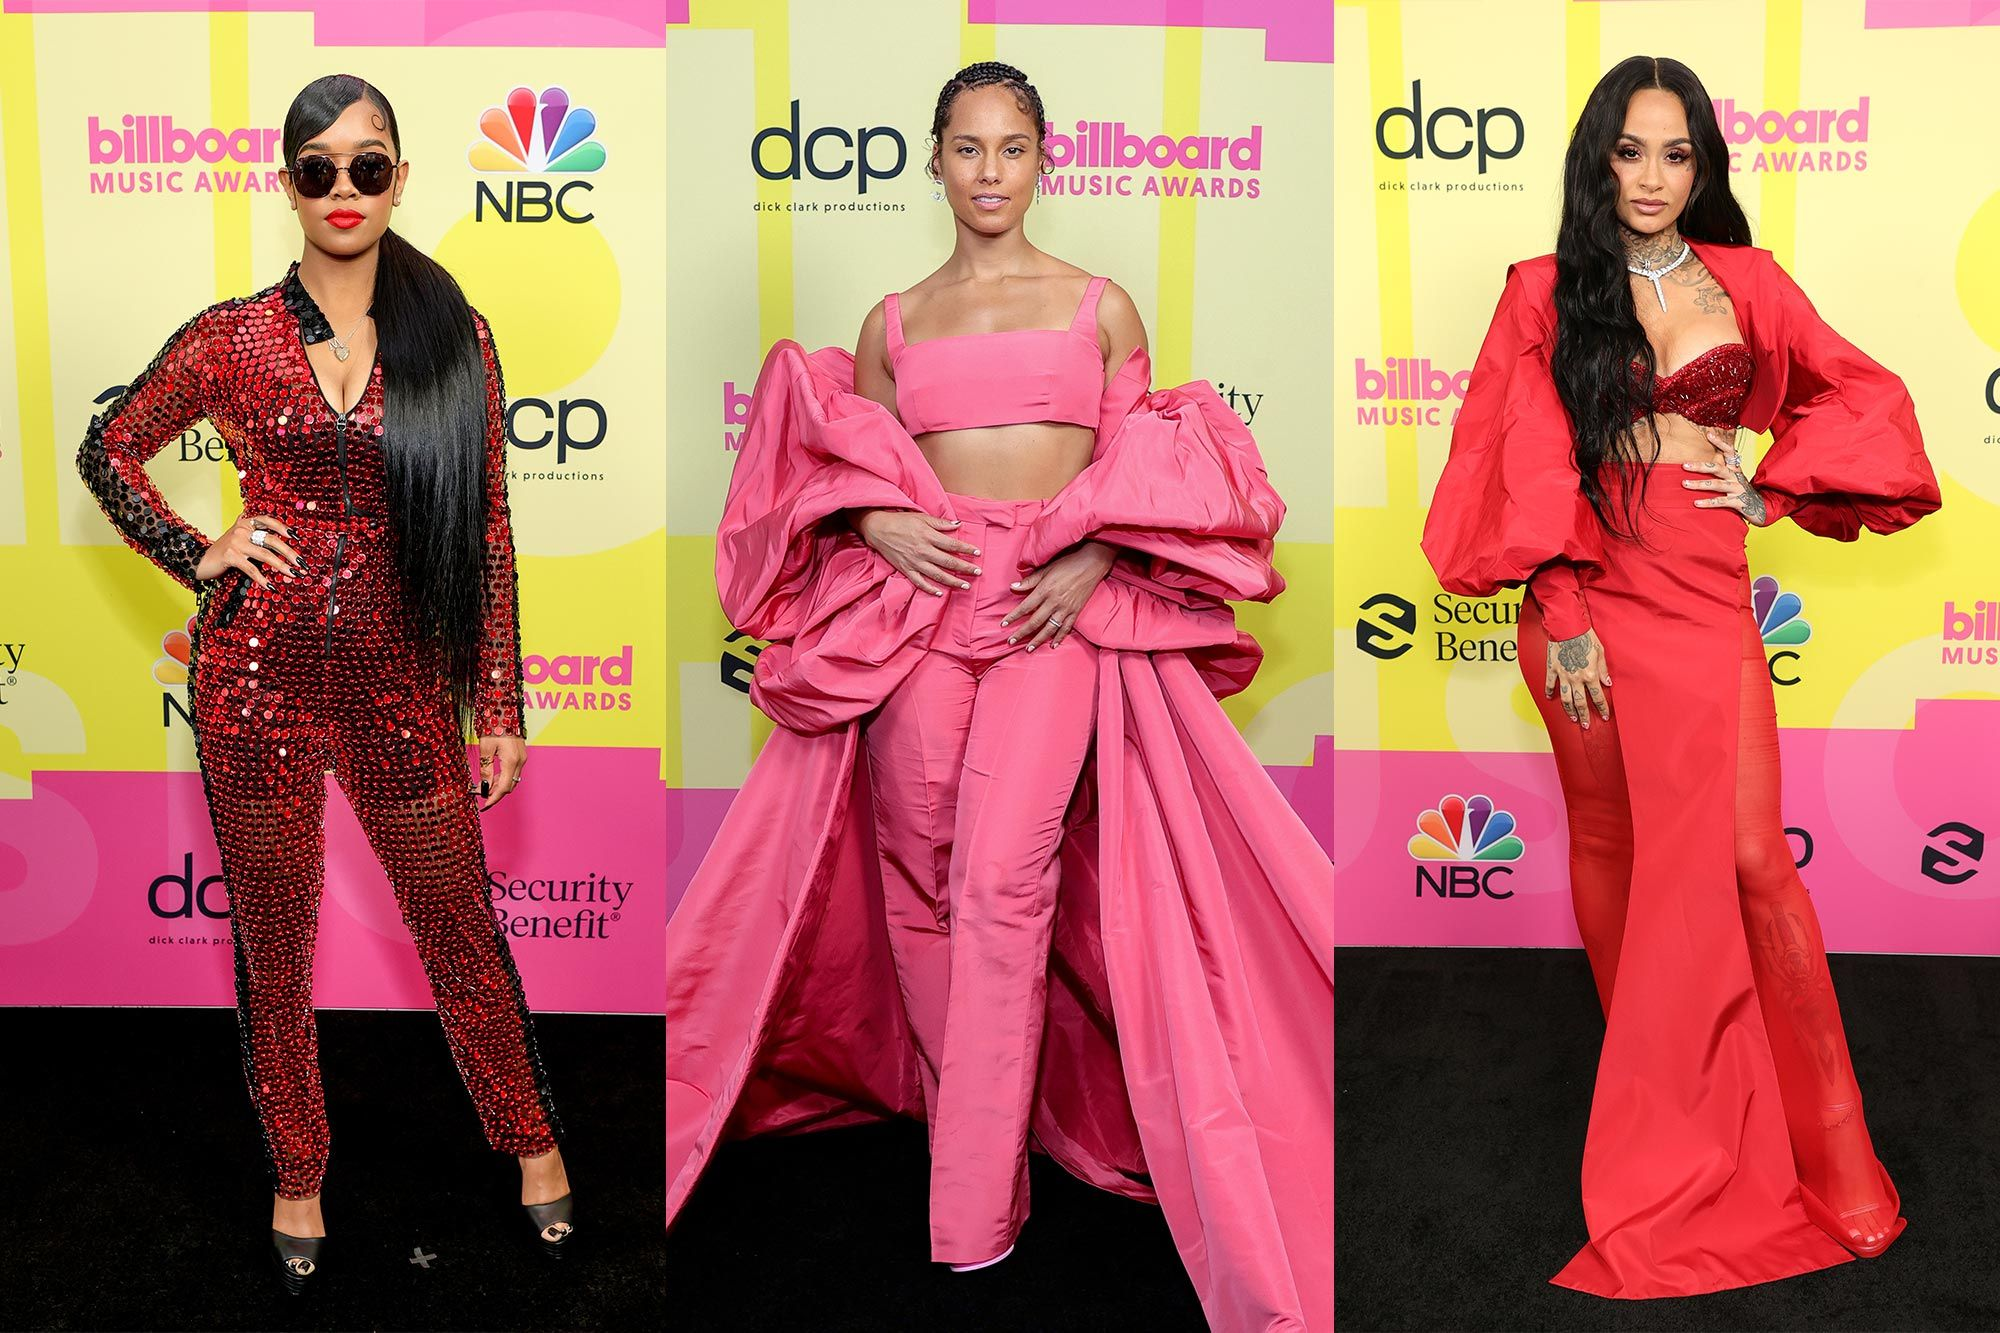 The Best Red Carpet Looks at the Billboard Music Awards 2021